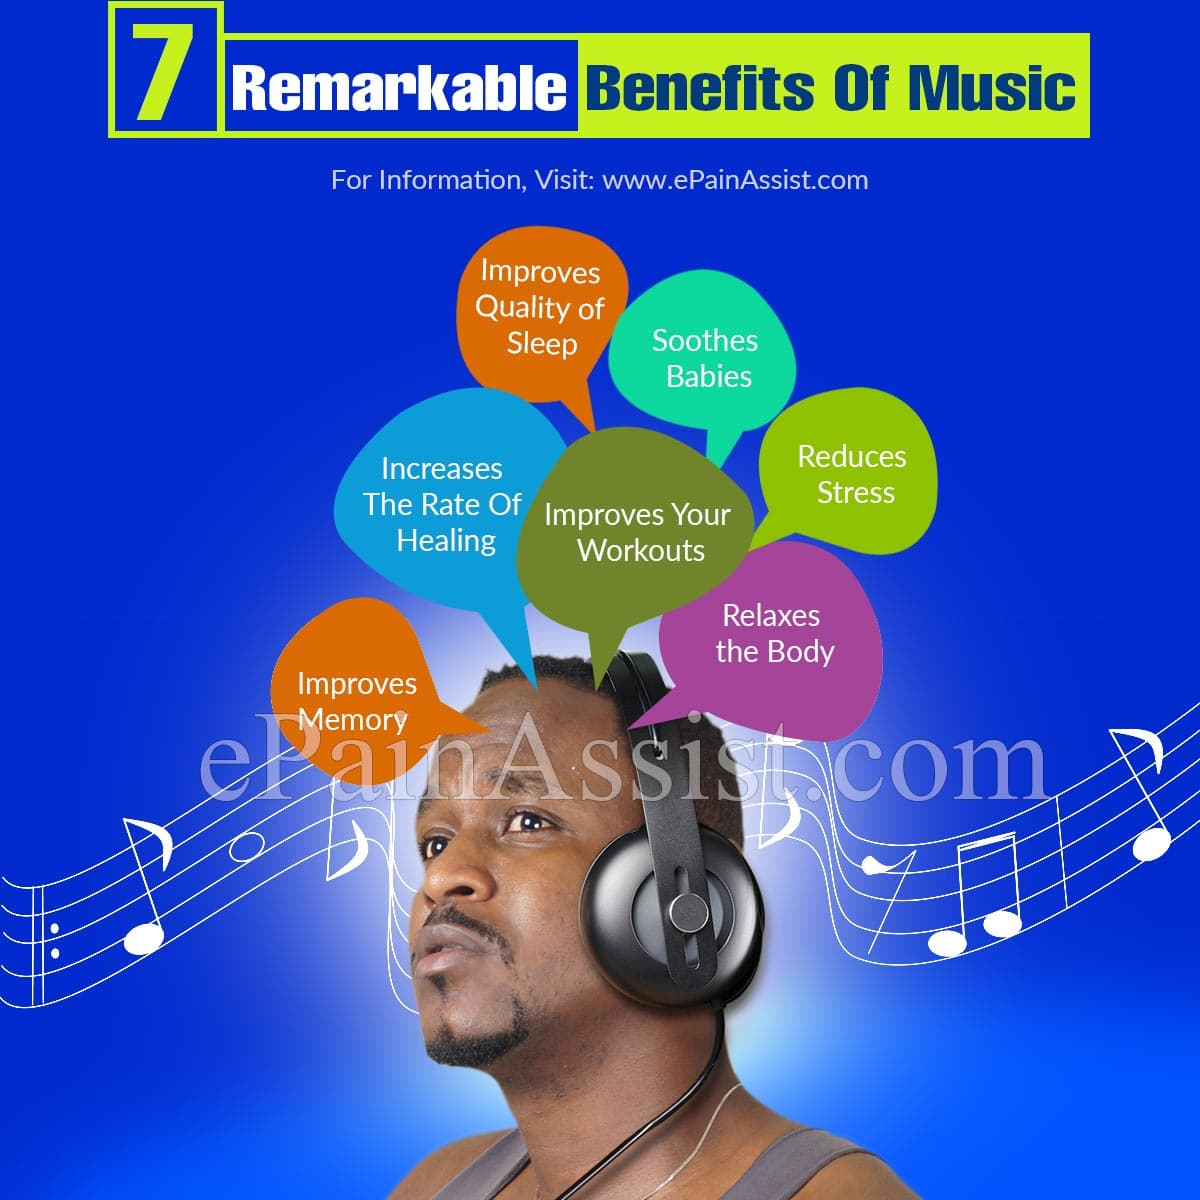 7 Remarkable Benefits Of Music